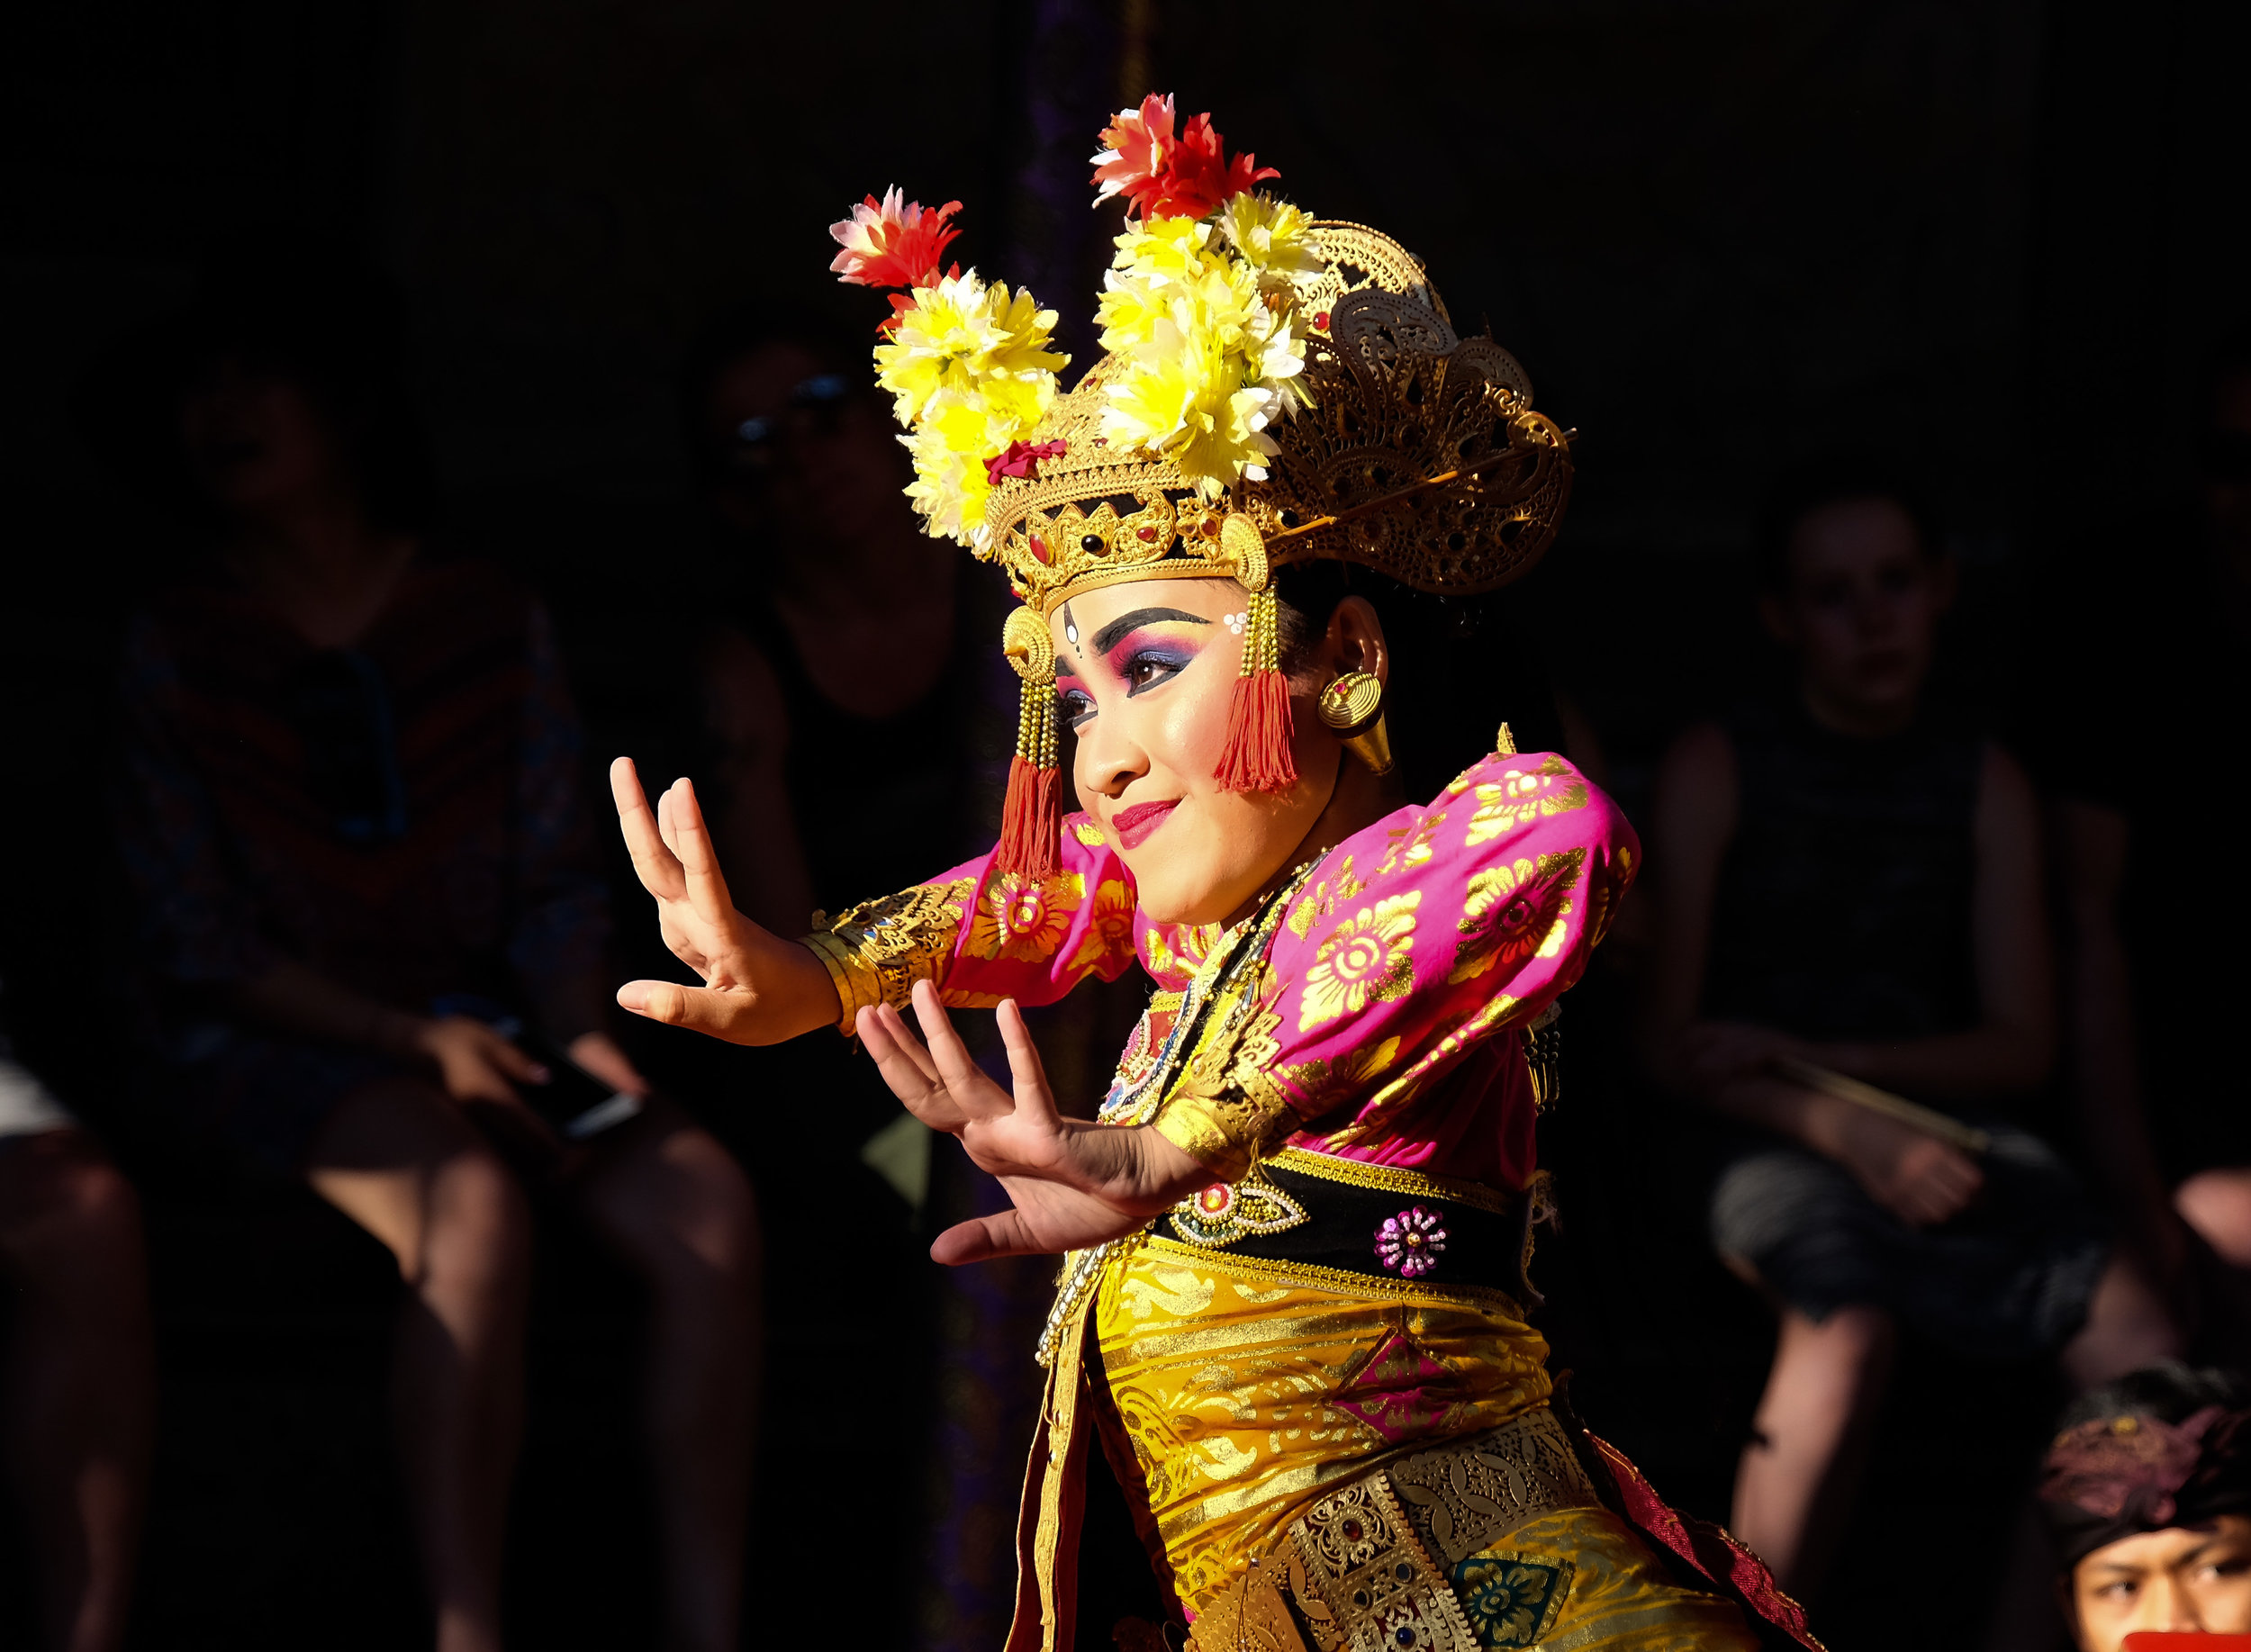 Ubud Dance Day  (4 of 11).jpg